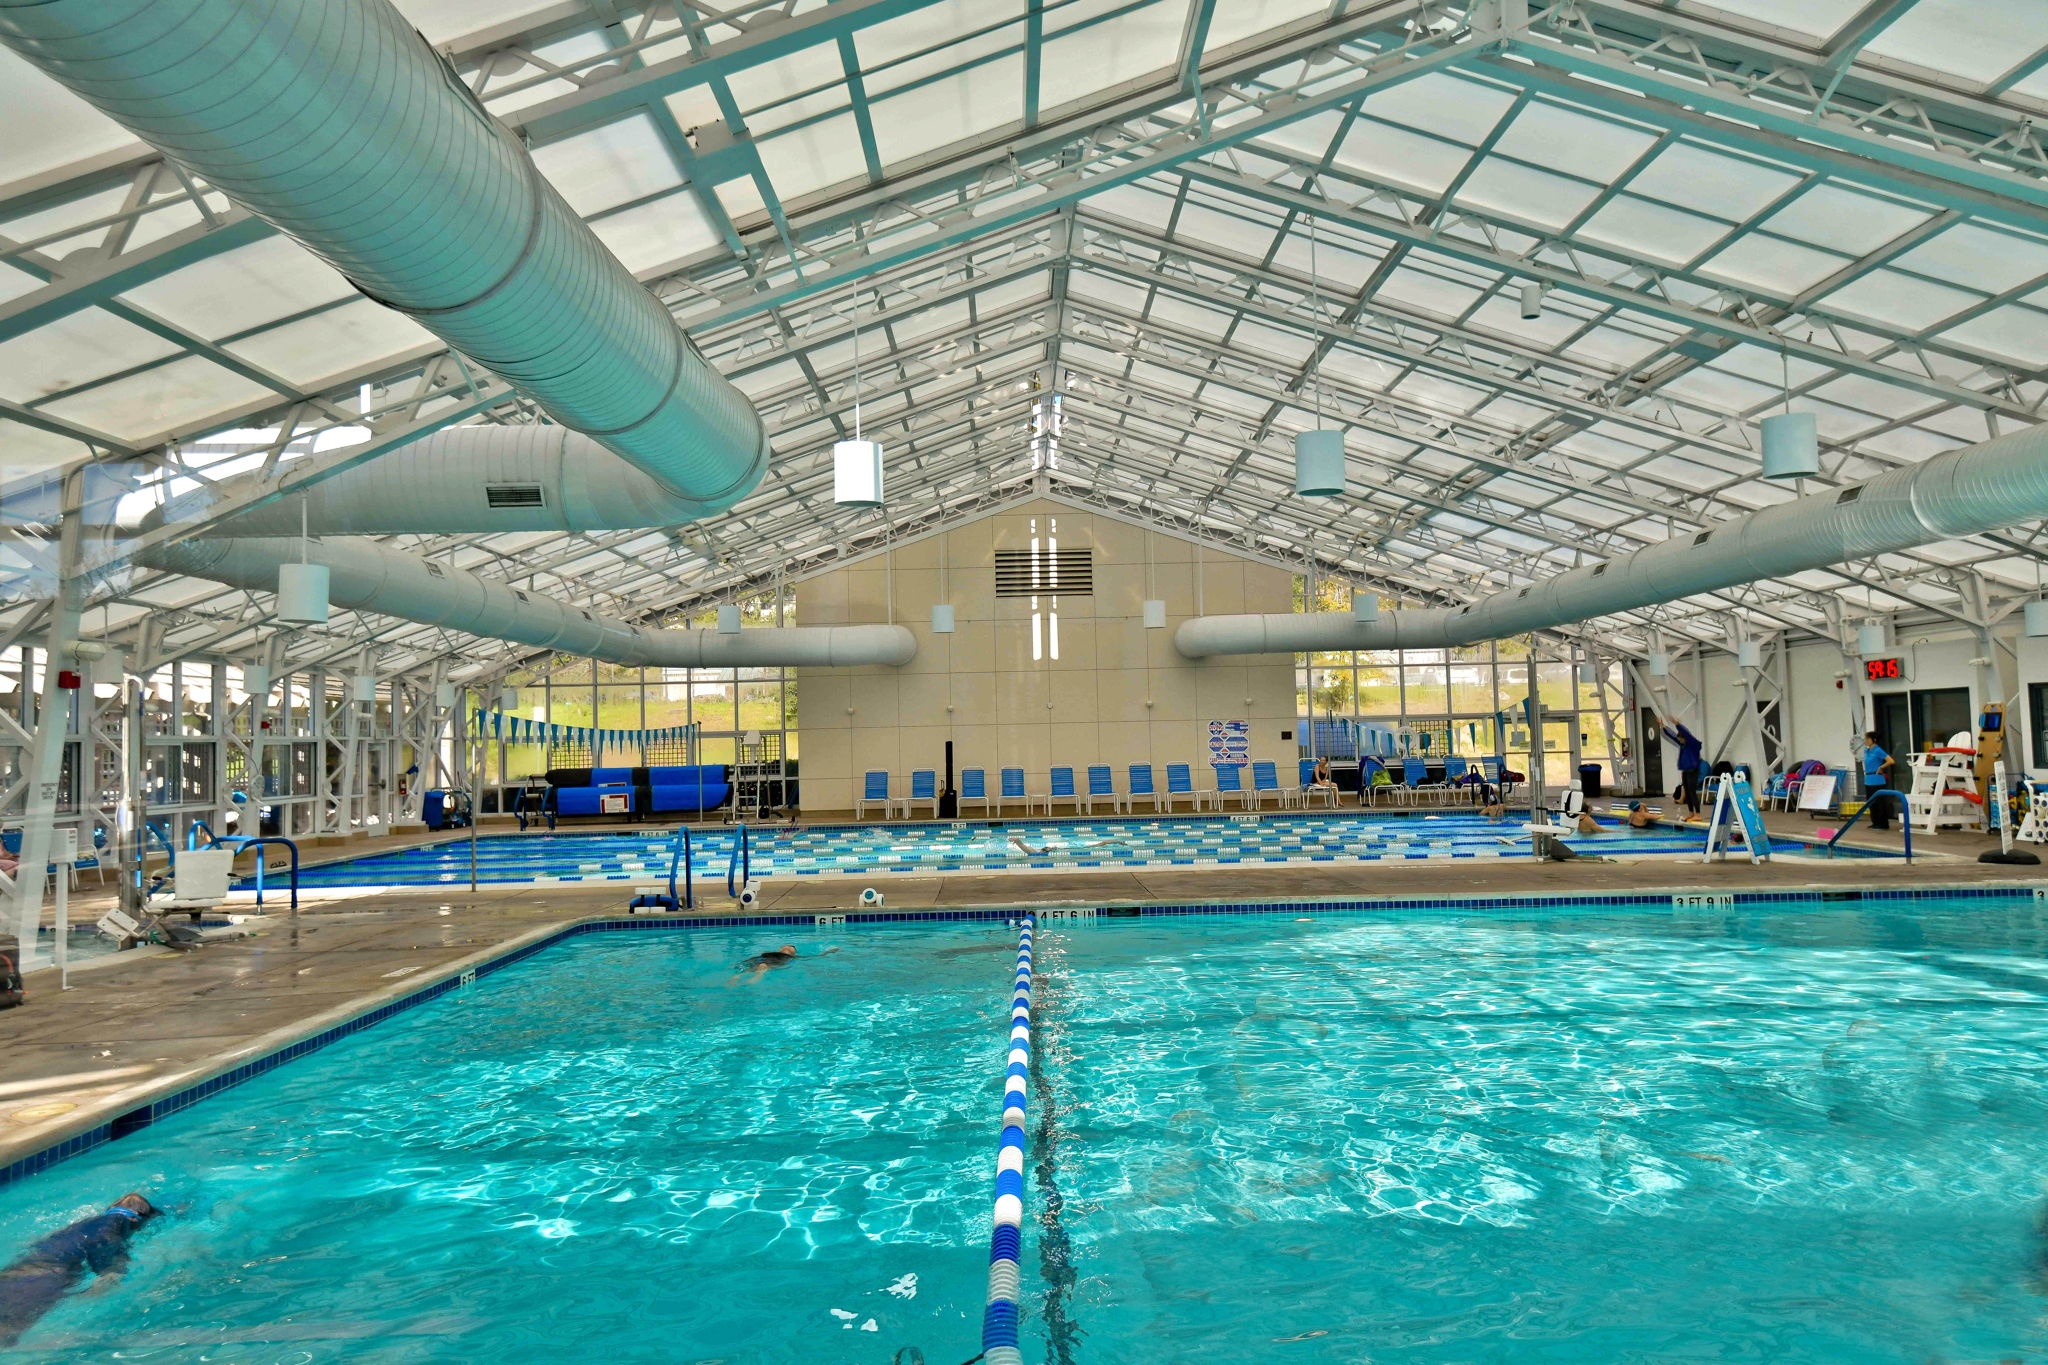 Pools at the Fitness Center